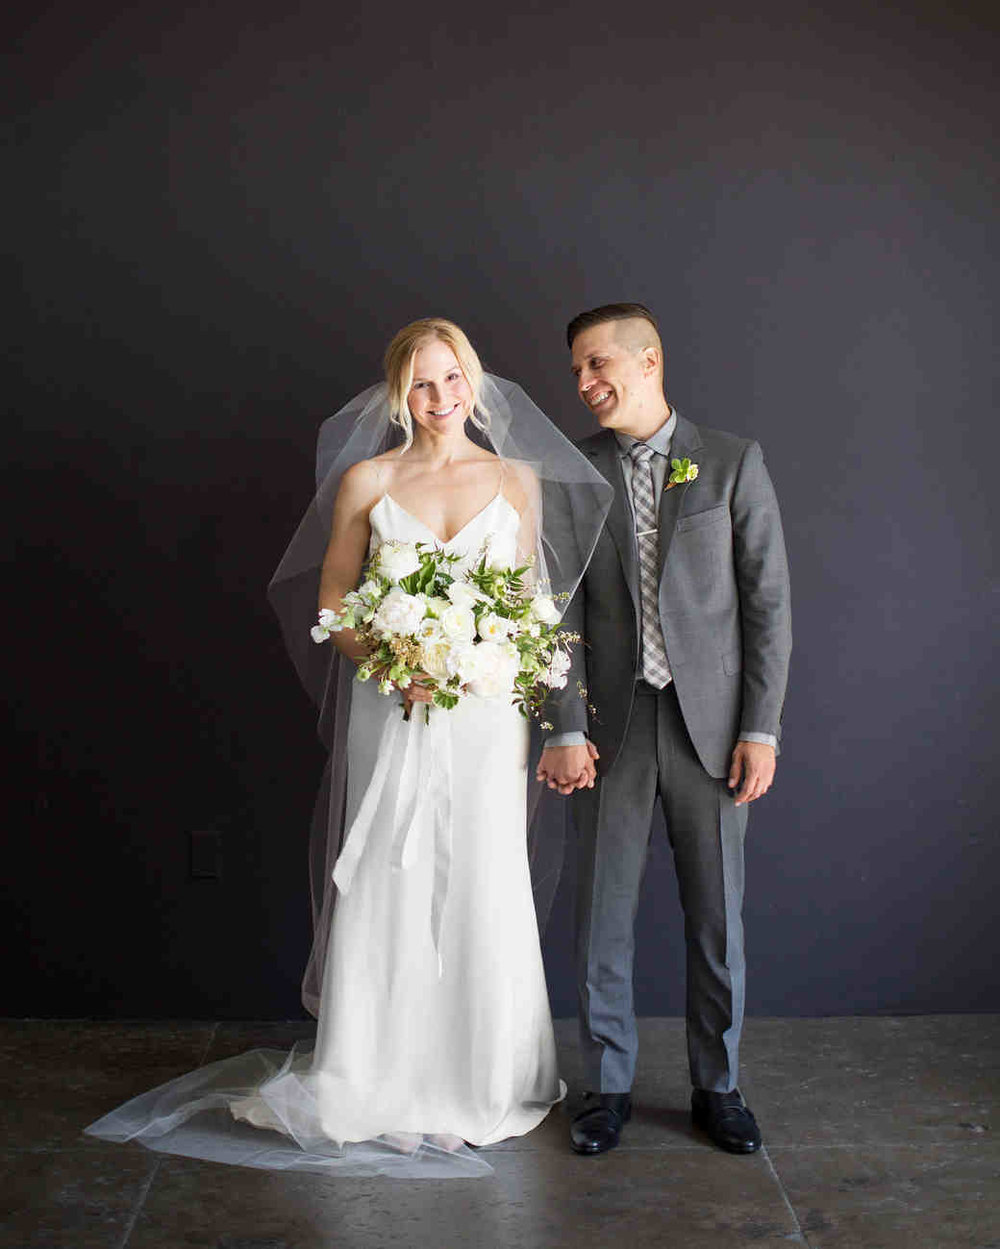 anne-ivan-wedding-california-couple-103180437_vert.jpg